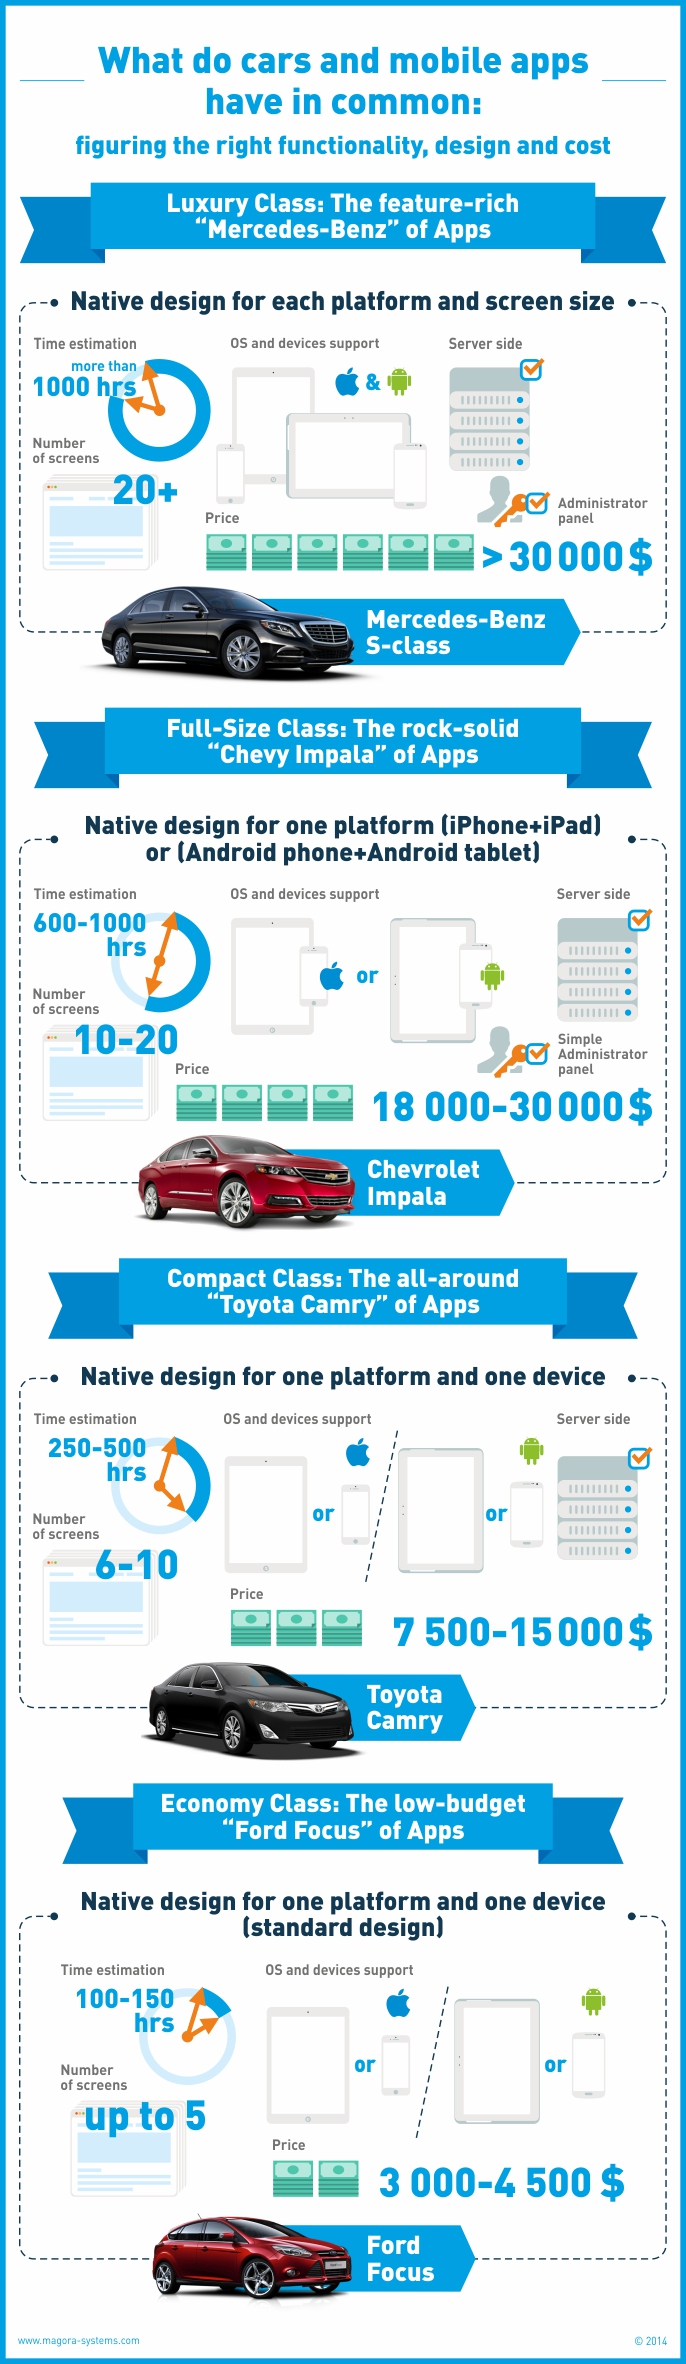 MobileApps&Cars_infographic_2